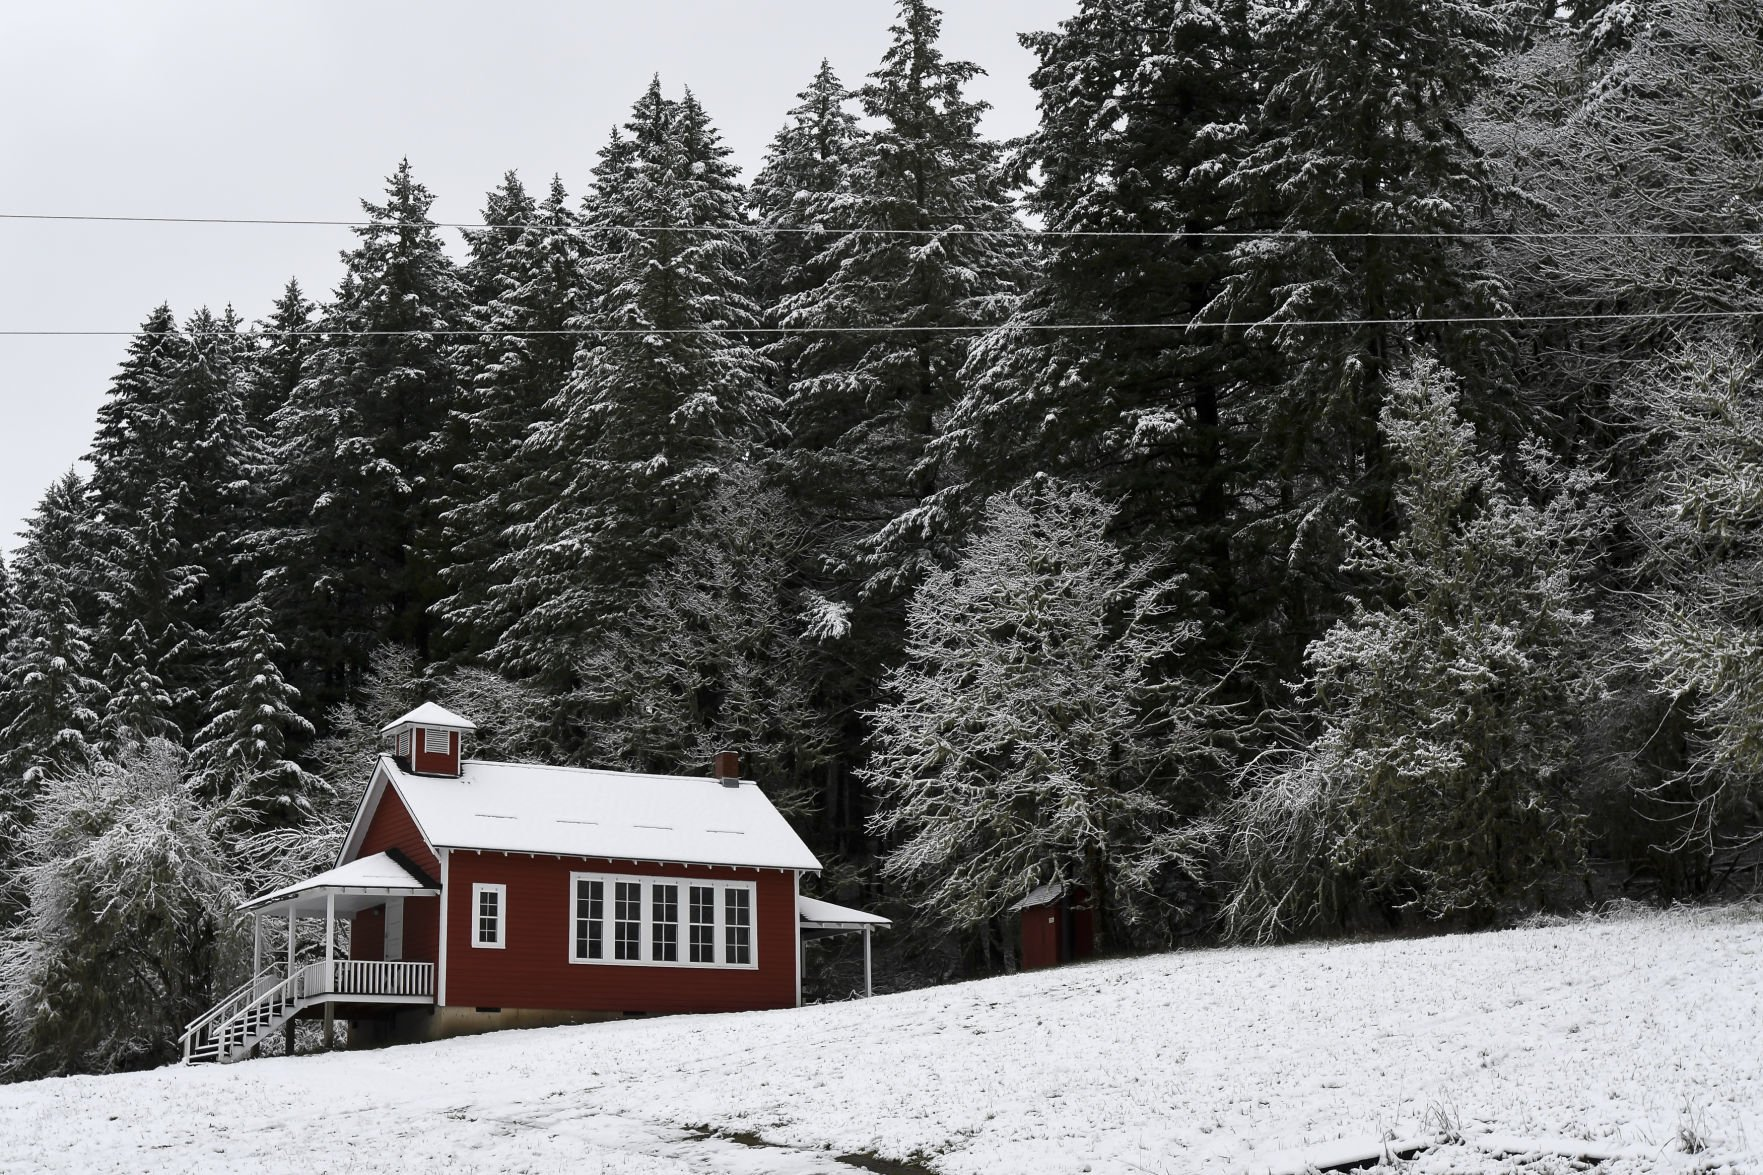 winter weather fleeting for corvallis local democratherald com rh democratherald com